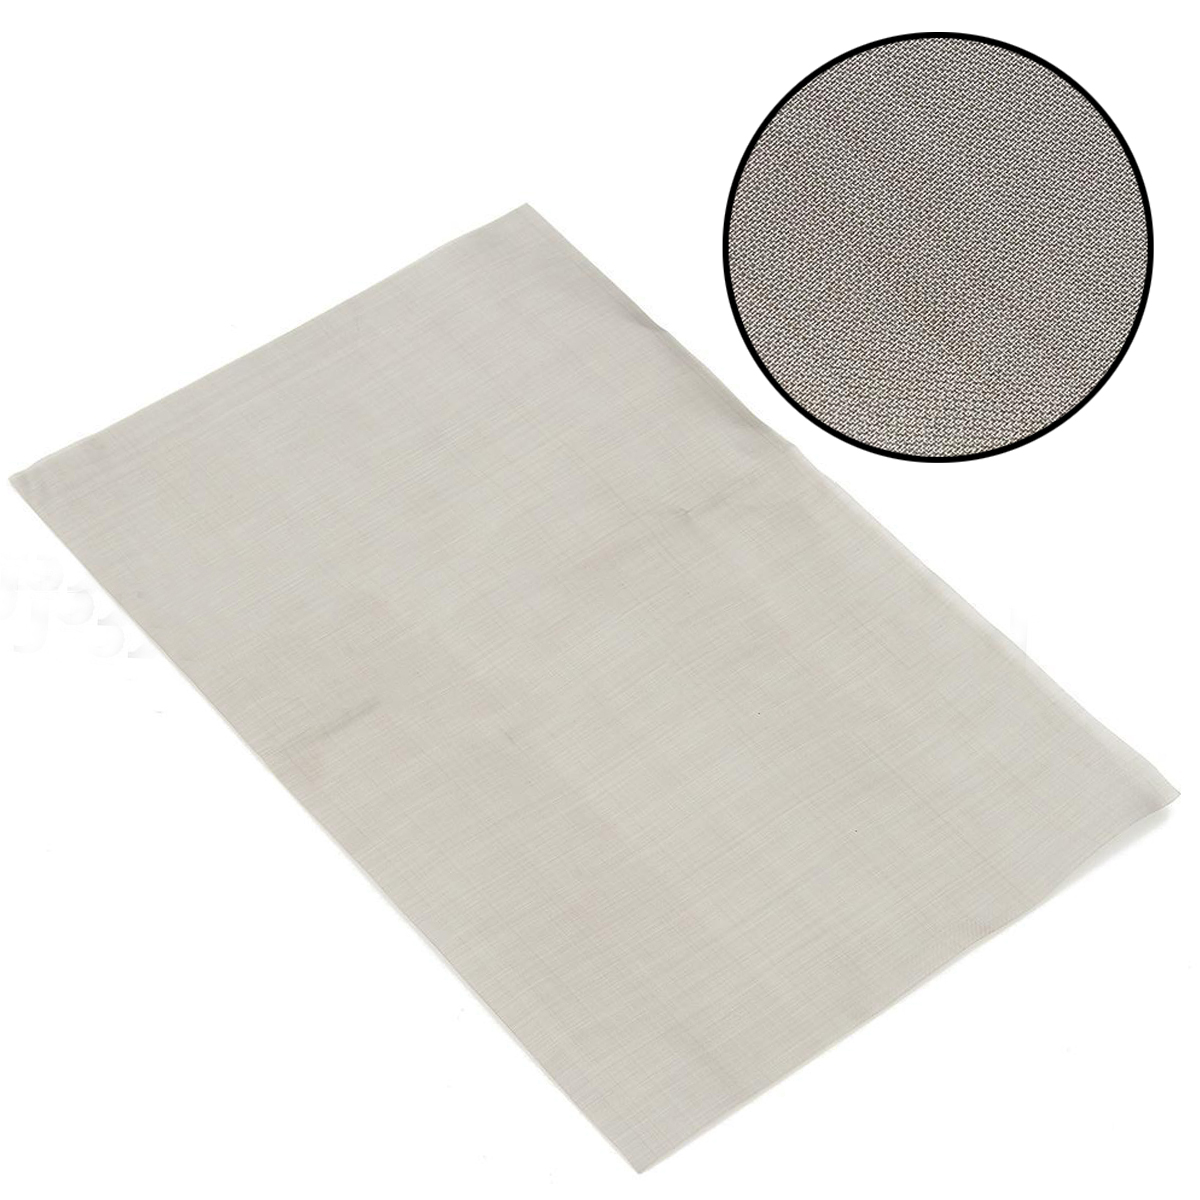 1pc Durable Silver 180/300/325/400 Mesh Woven Wire Mayitr Stainless Steel Filter Woven Wires Sheet Filter for Mining 30cm*20cm rimei 3013 handy durable stainless steel nailclippers w grinding pad silver